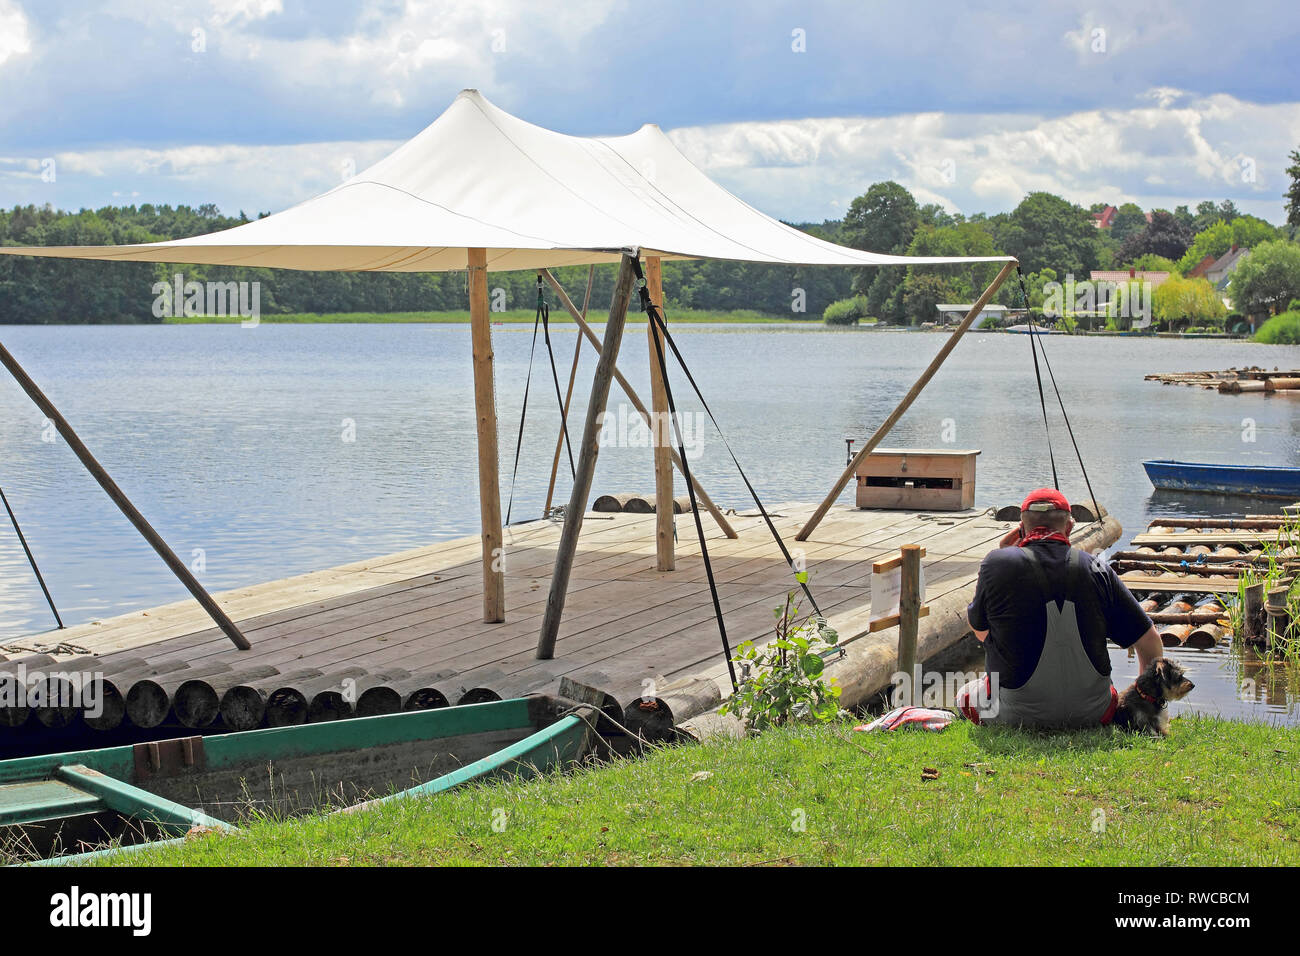 An excursion-raft with awning in Lychen in the Uckermatk in North Germany - Stock Image